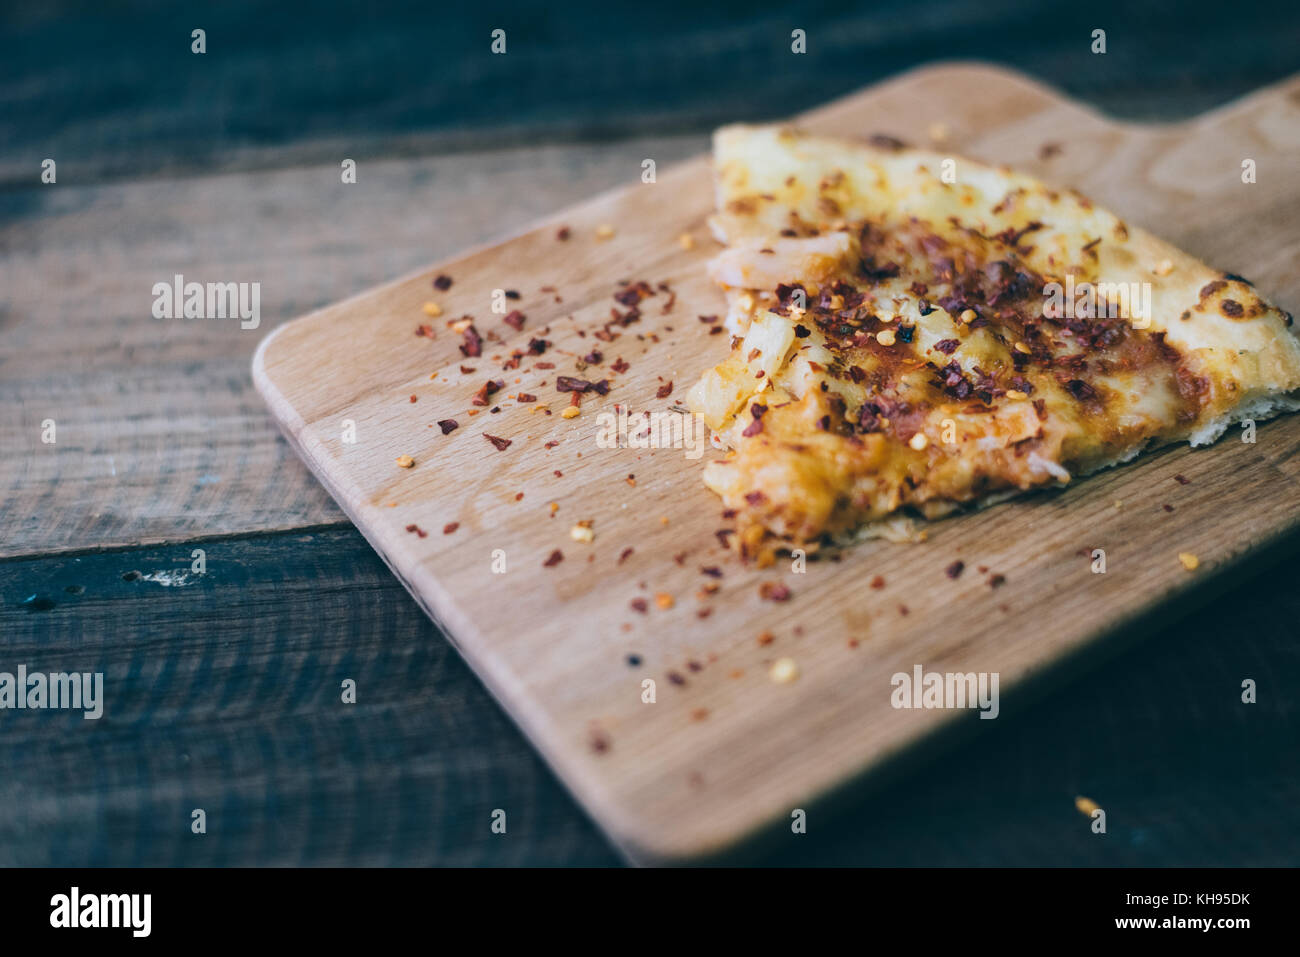 pizza slice with cheese,pineapple and chicken meat topping on a wooden board/table.famous italian food - Stock Image